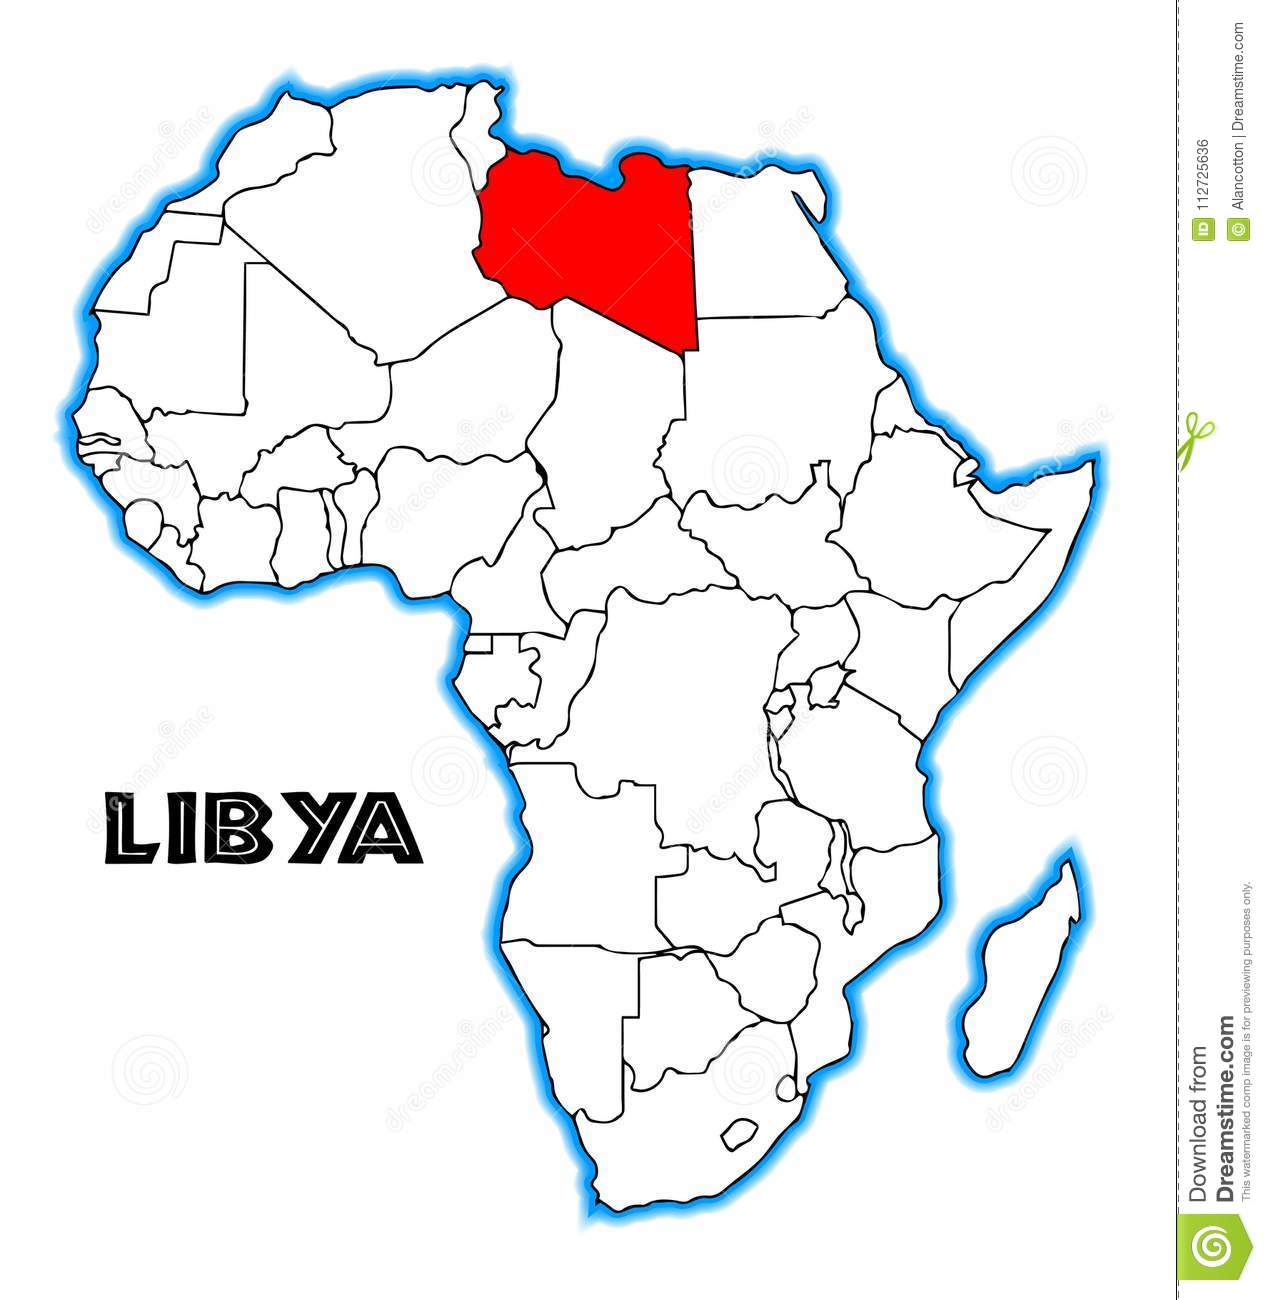 Libya On Africa Map.Libya Africa Map Stock Vector Illustration Of Black 112725636